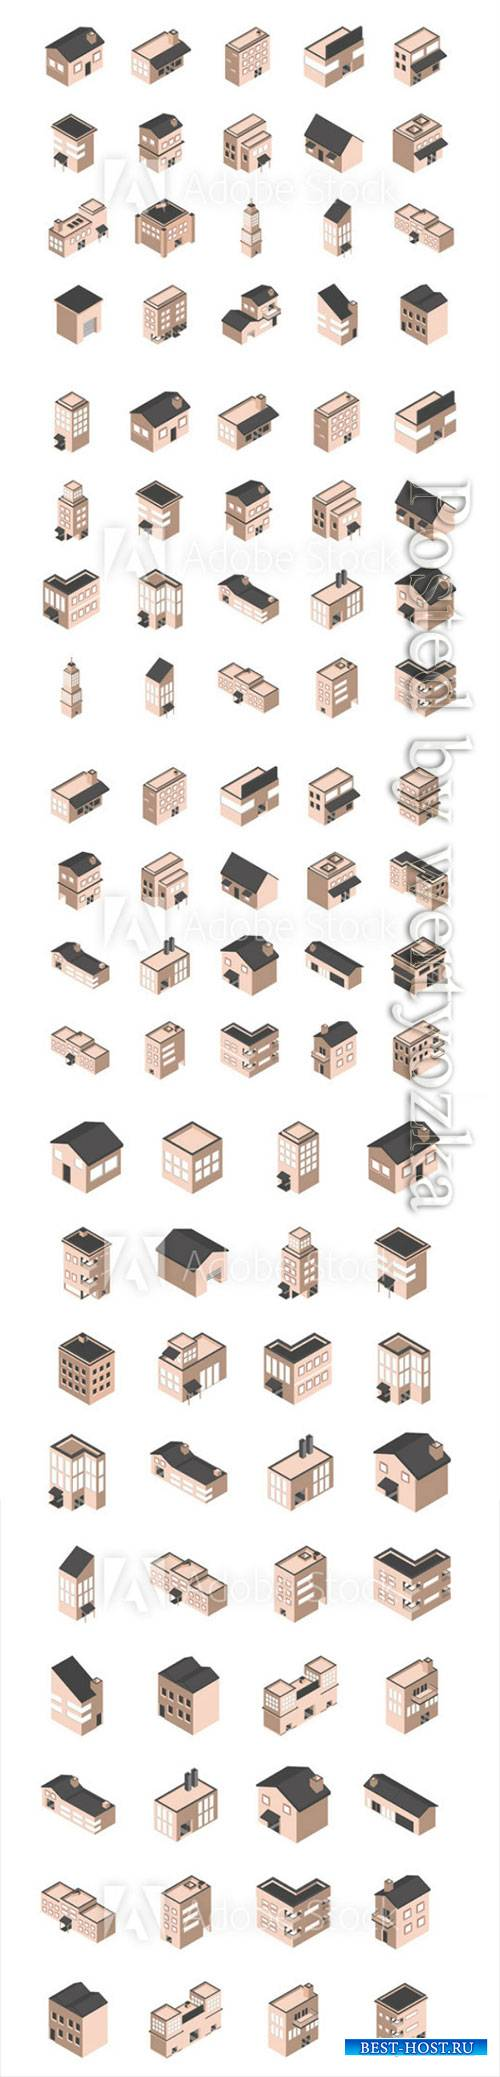 Building isometric style icons vector set